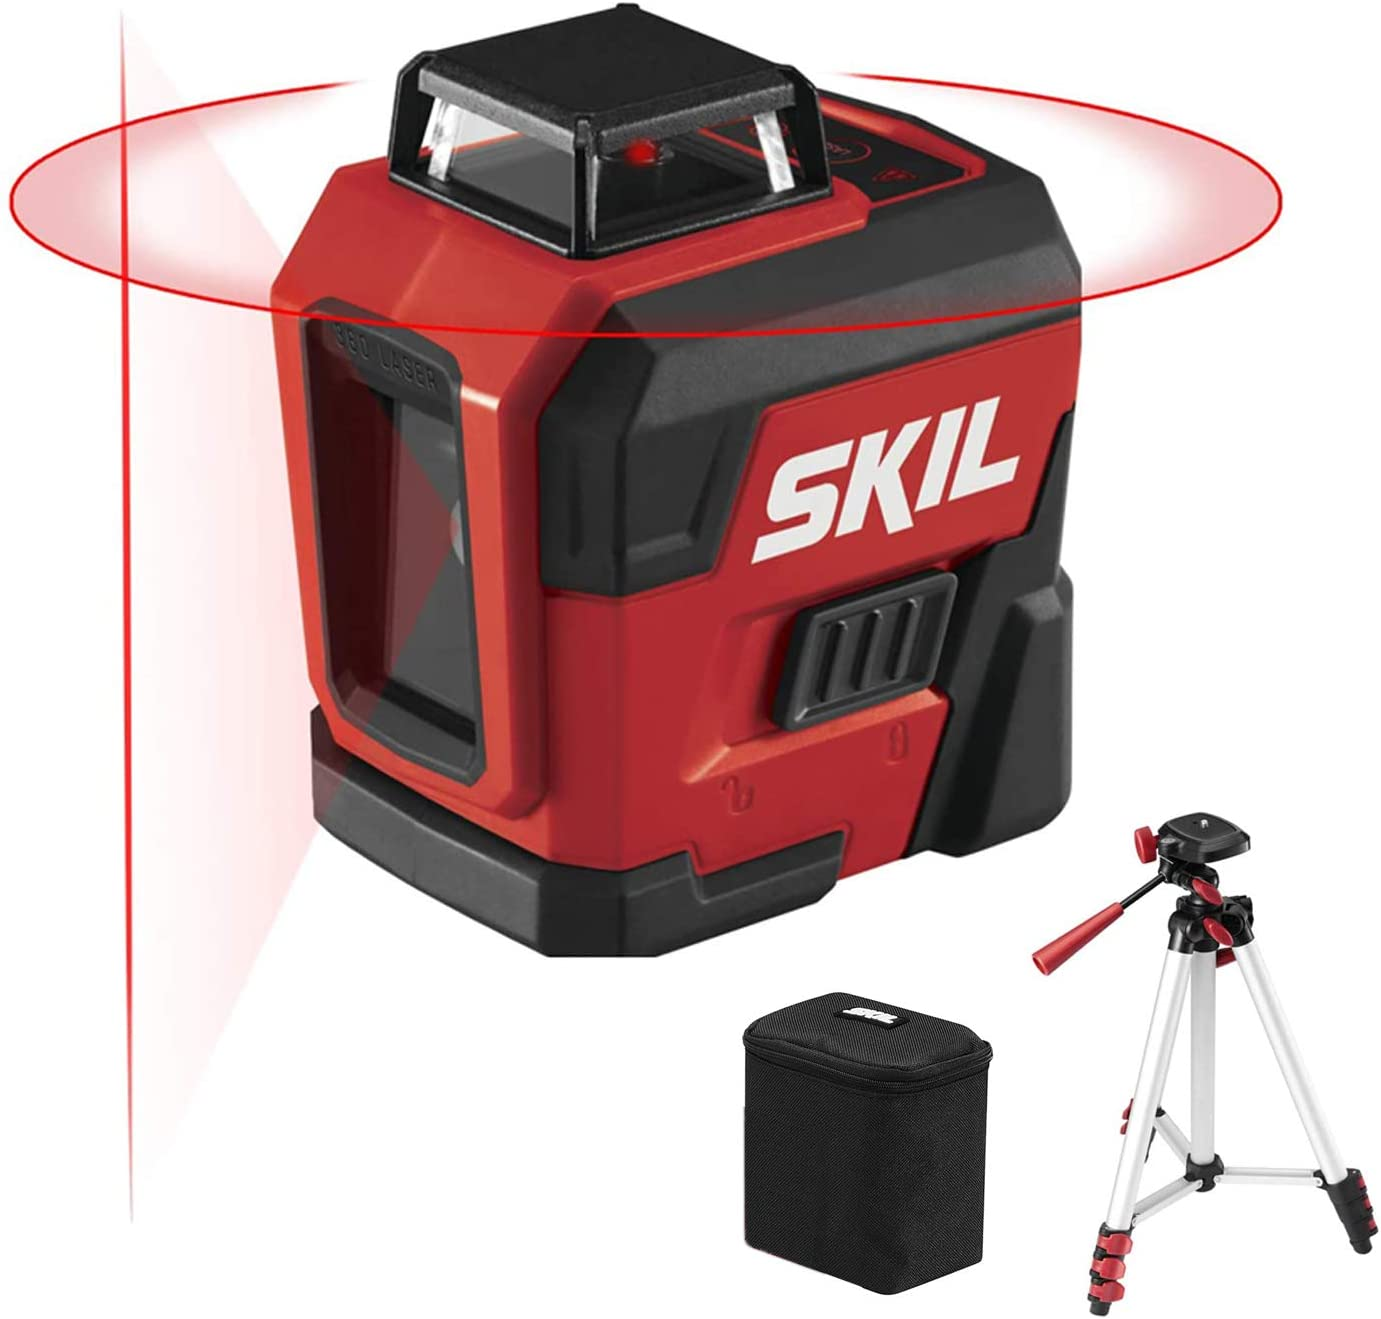 Leveling Tool Omnidirectional Ground and Wall Sticker with Vertical Horizontal Oblique Line Deliver Without Dry Battery 2 Cross-Lines Laser Level Kecheer IP54 Laser Level 4/° Self-Leveling Function